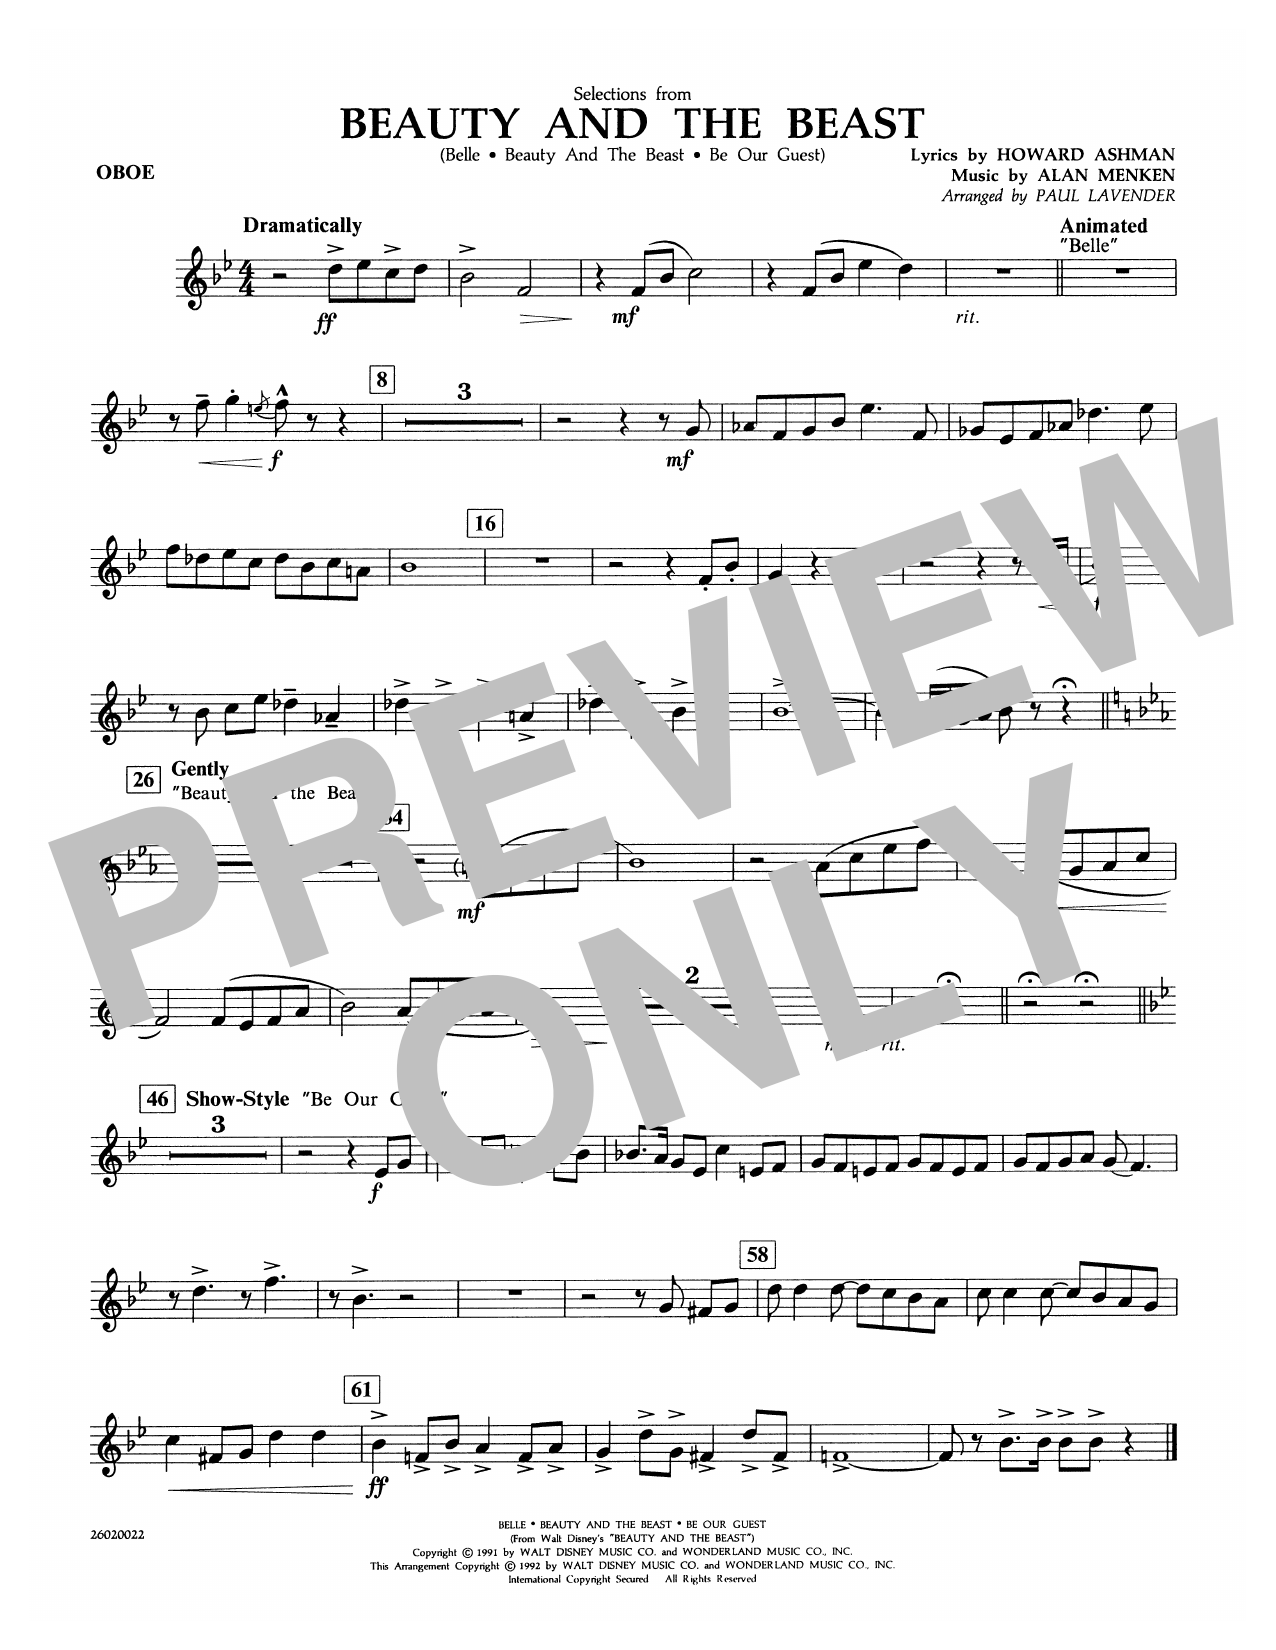 Paul Lavender Selections from Beauty and the Beast - Oboe sheet music notes and chords. Download Printable PDF.